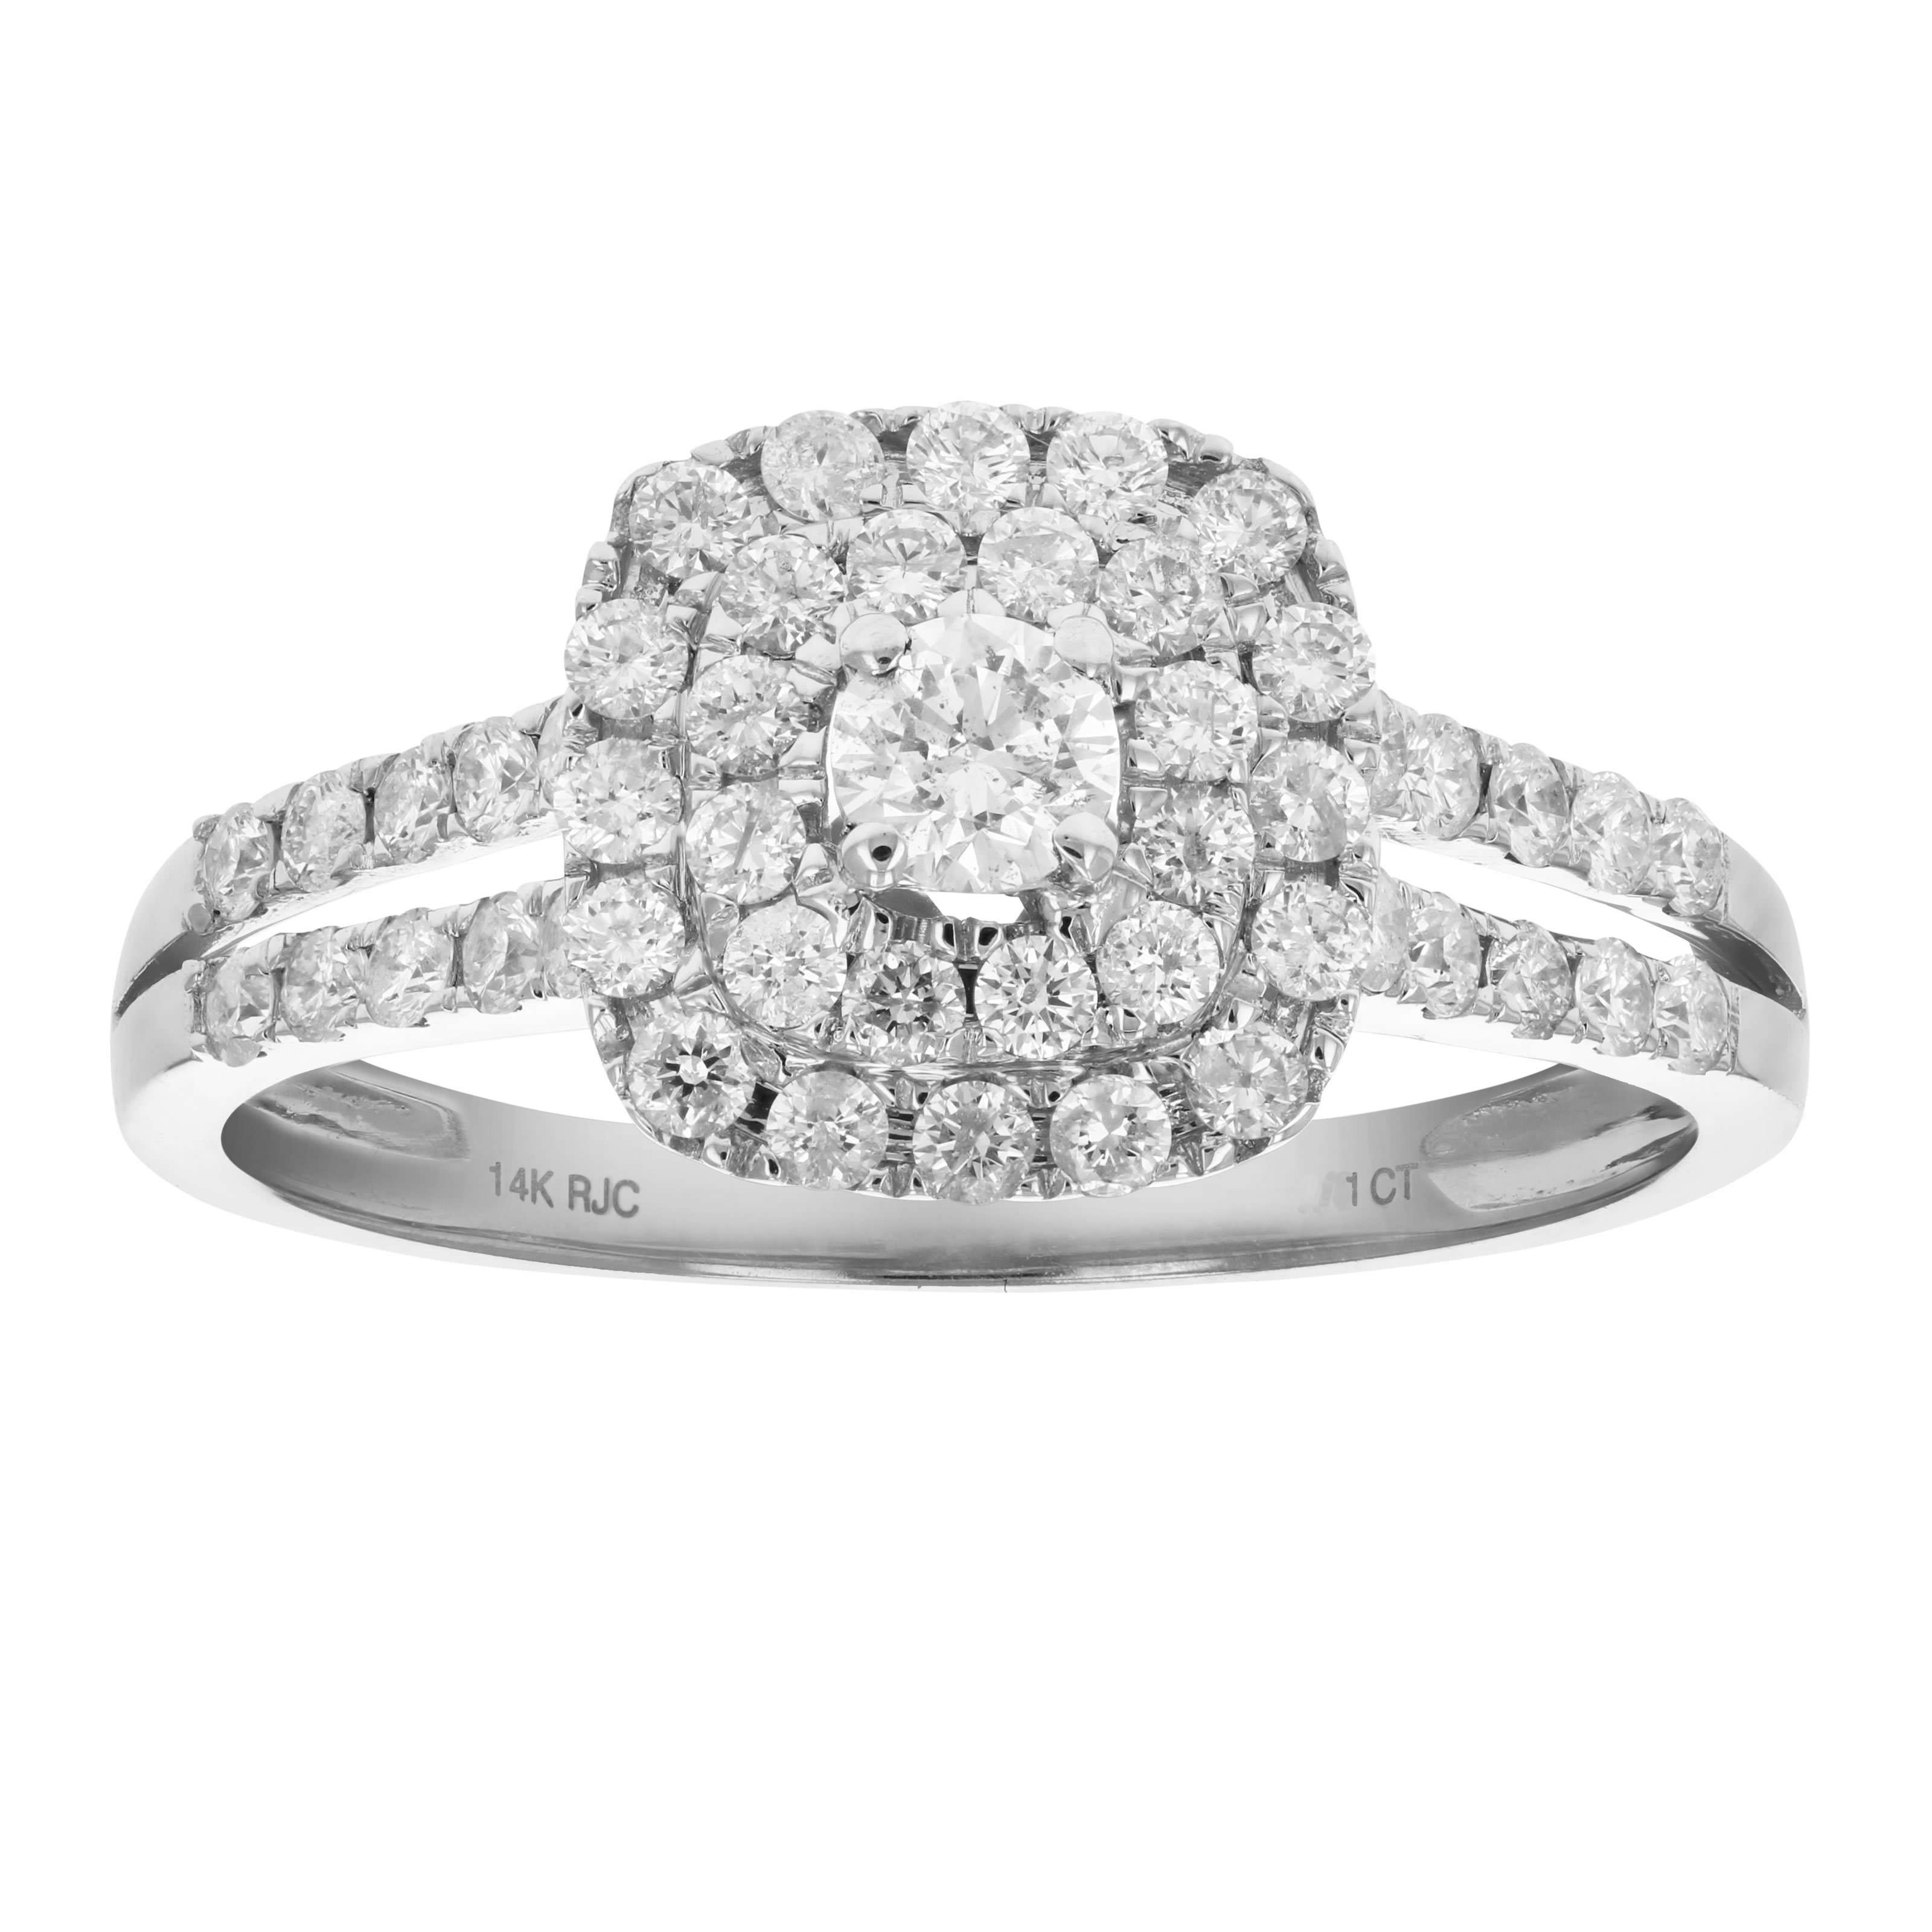 wedding me luxury show rings size carat with ring ashworthmairsgroup fingers fresh pictures your of